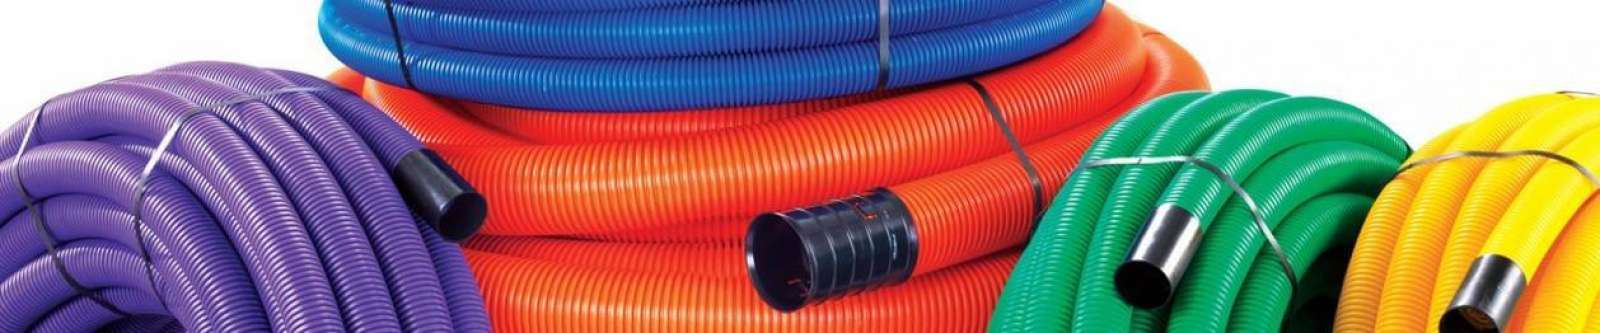 Ridgicoil Utilities | Cable Protection | Polypipe Civils